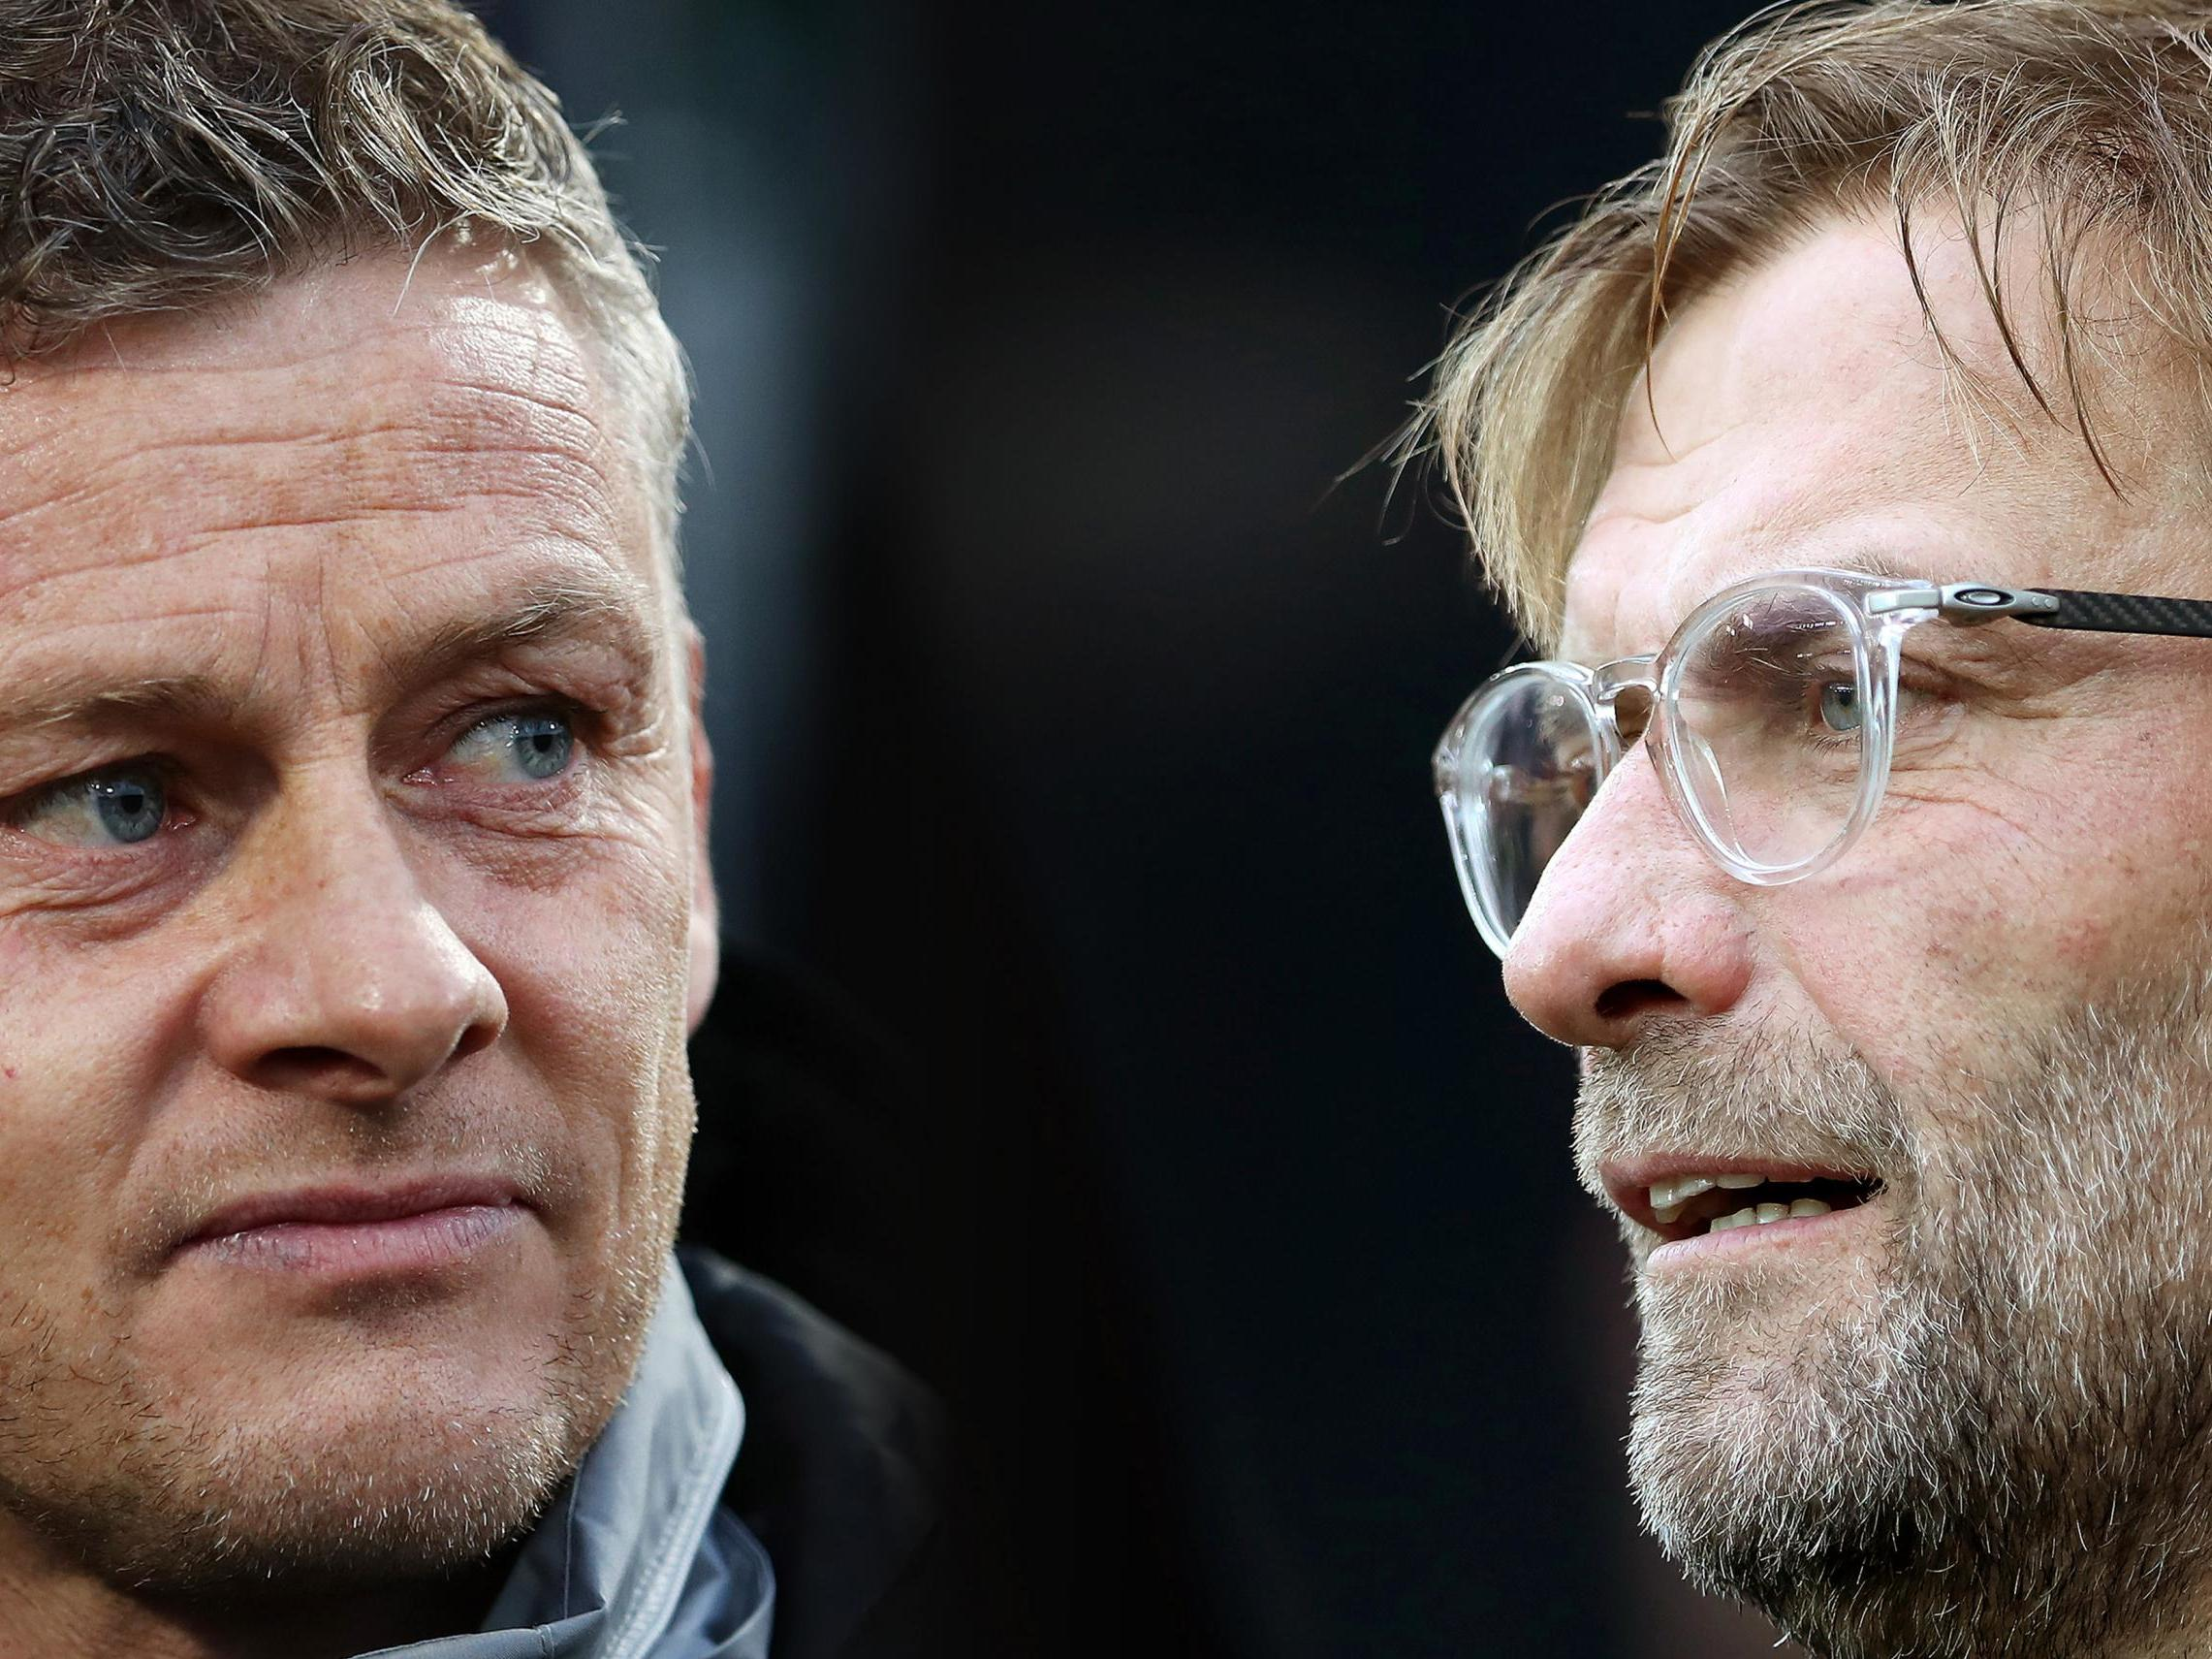 Liverpool vs Manchester United prediction: How will Premier League match play out today?